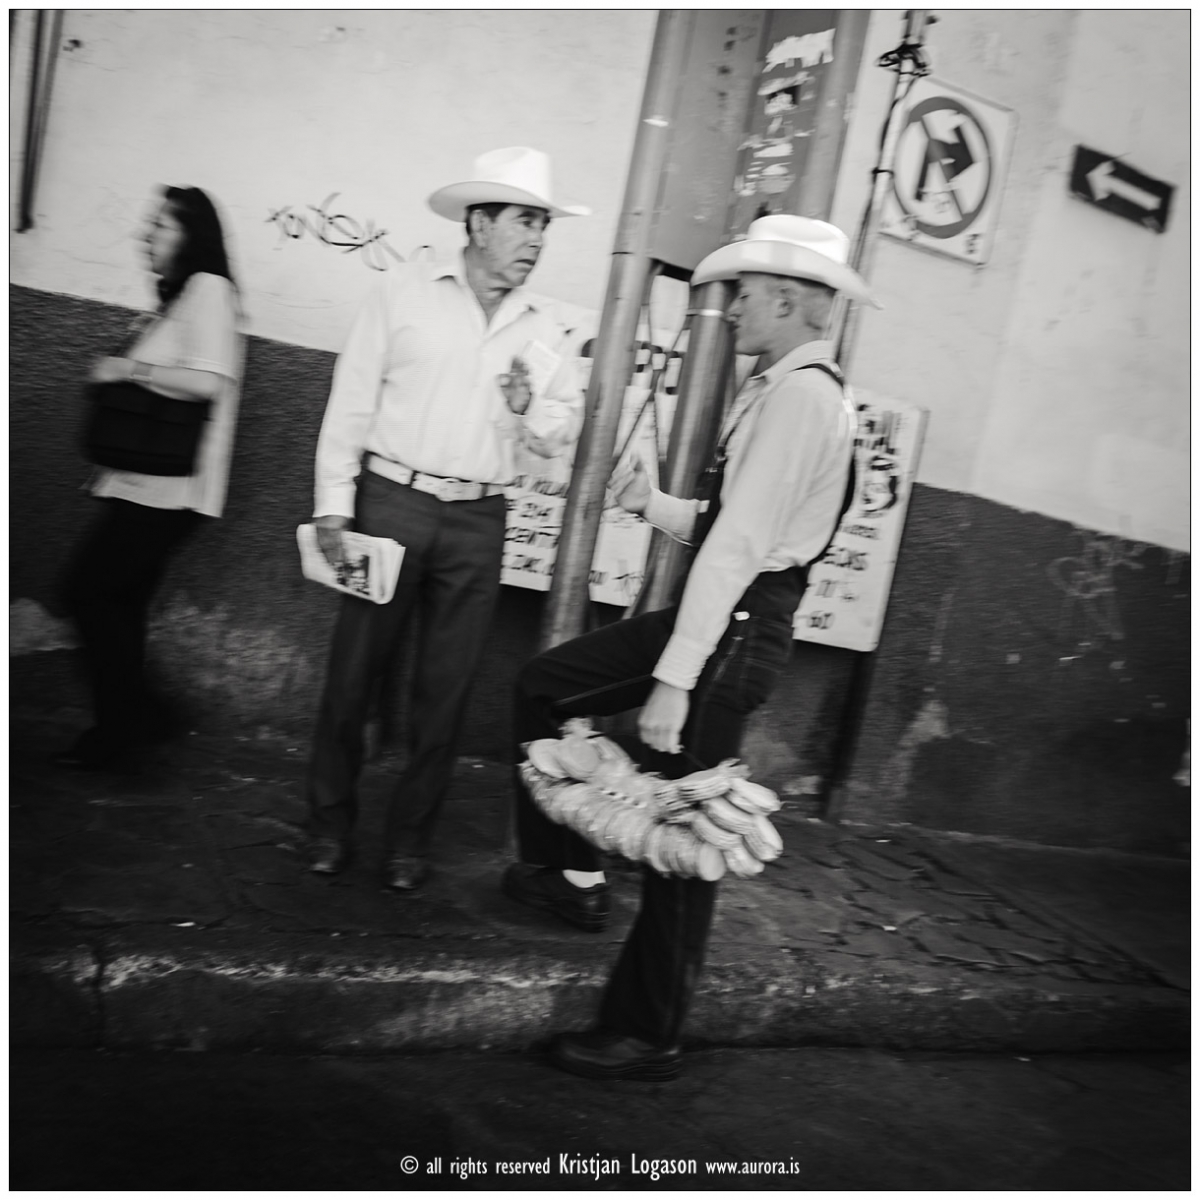 Two men with hats and bunch of bread in a street of Zacatecas city, Mexico